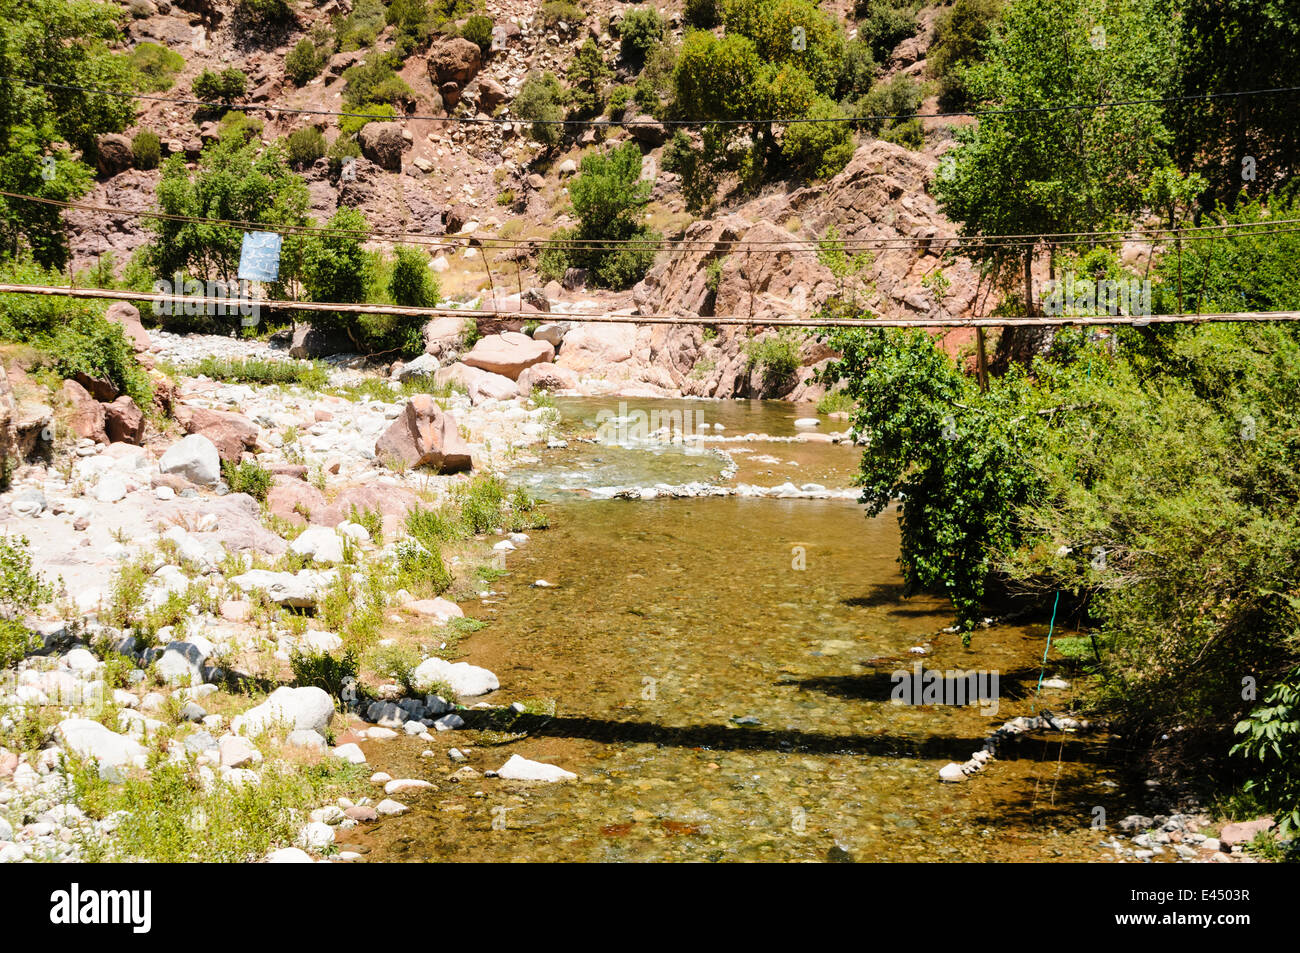 A potentially dangerous rickety bridge over the Ourika River, Ourika Valley, Atlas Mountains, Morocco - Stock Image